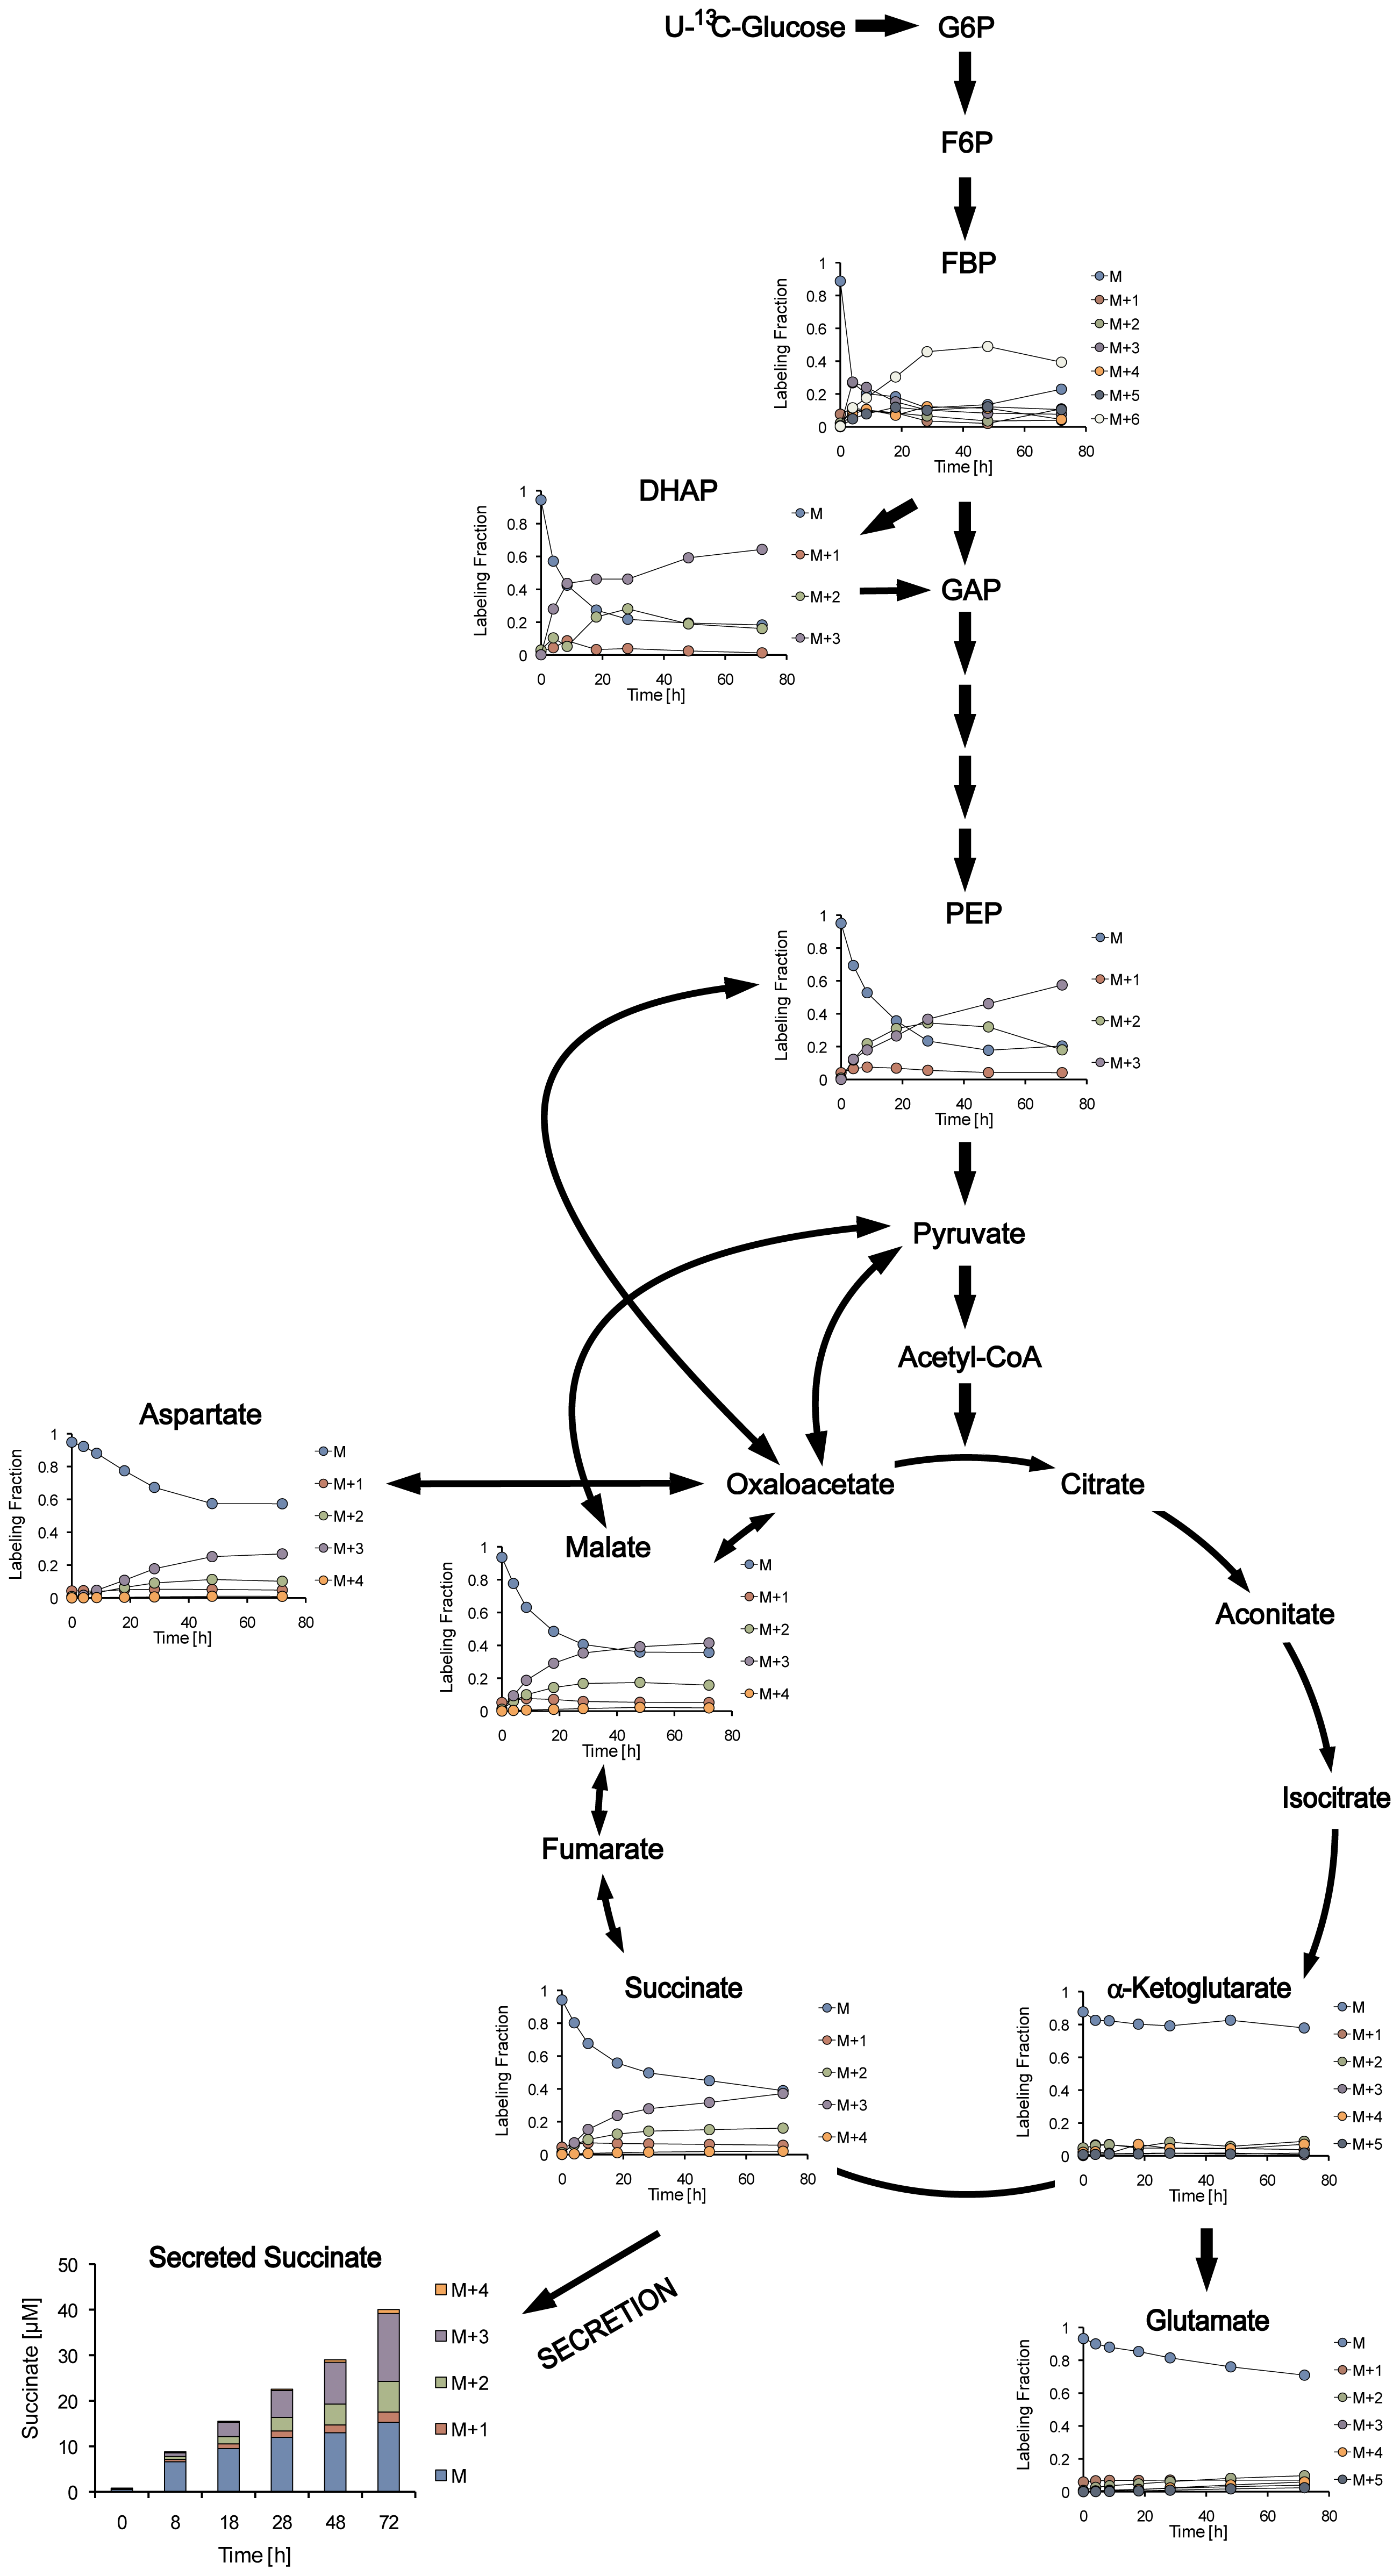 Dynamic isotopic intracellular metabolite measurements in anaerobically persisting cells during metabolism of U-<sup>13</sup>C glucose.